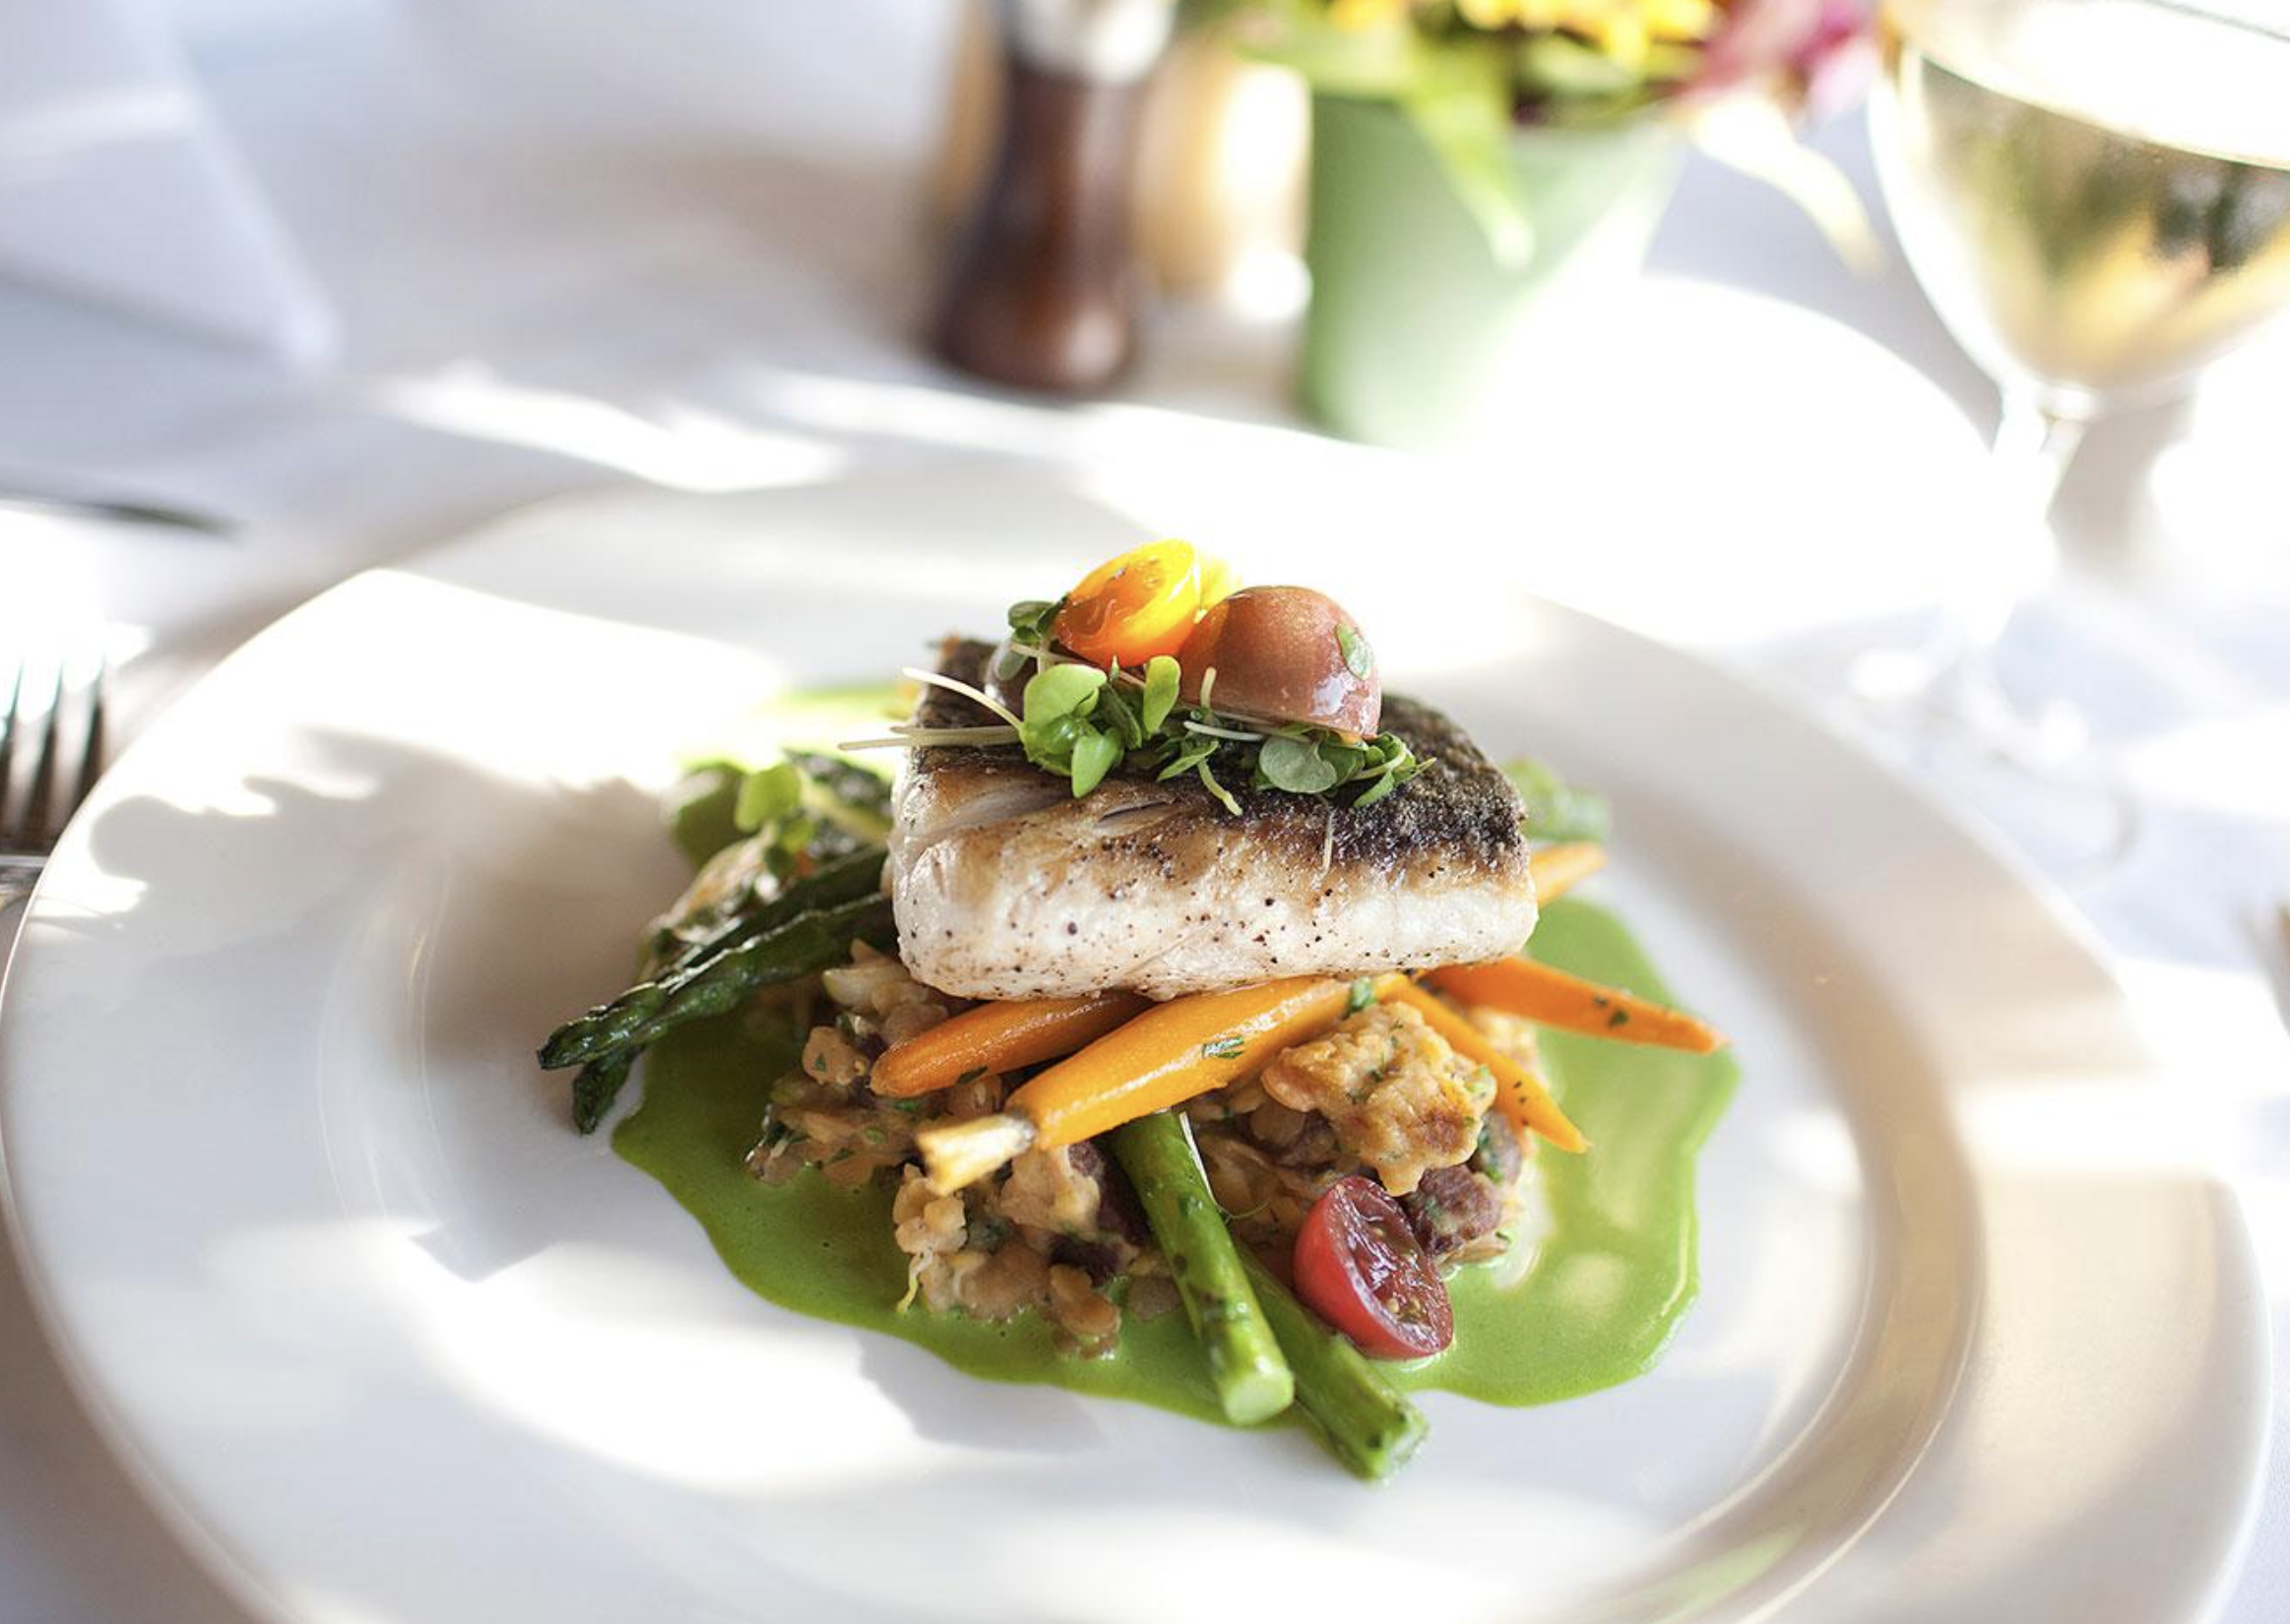 Santa Barbara Dining - SB has some of the best food in Southern California., with many great choices from romantic restaurants to family friendly diners.